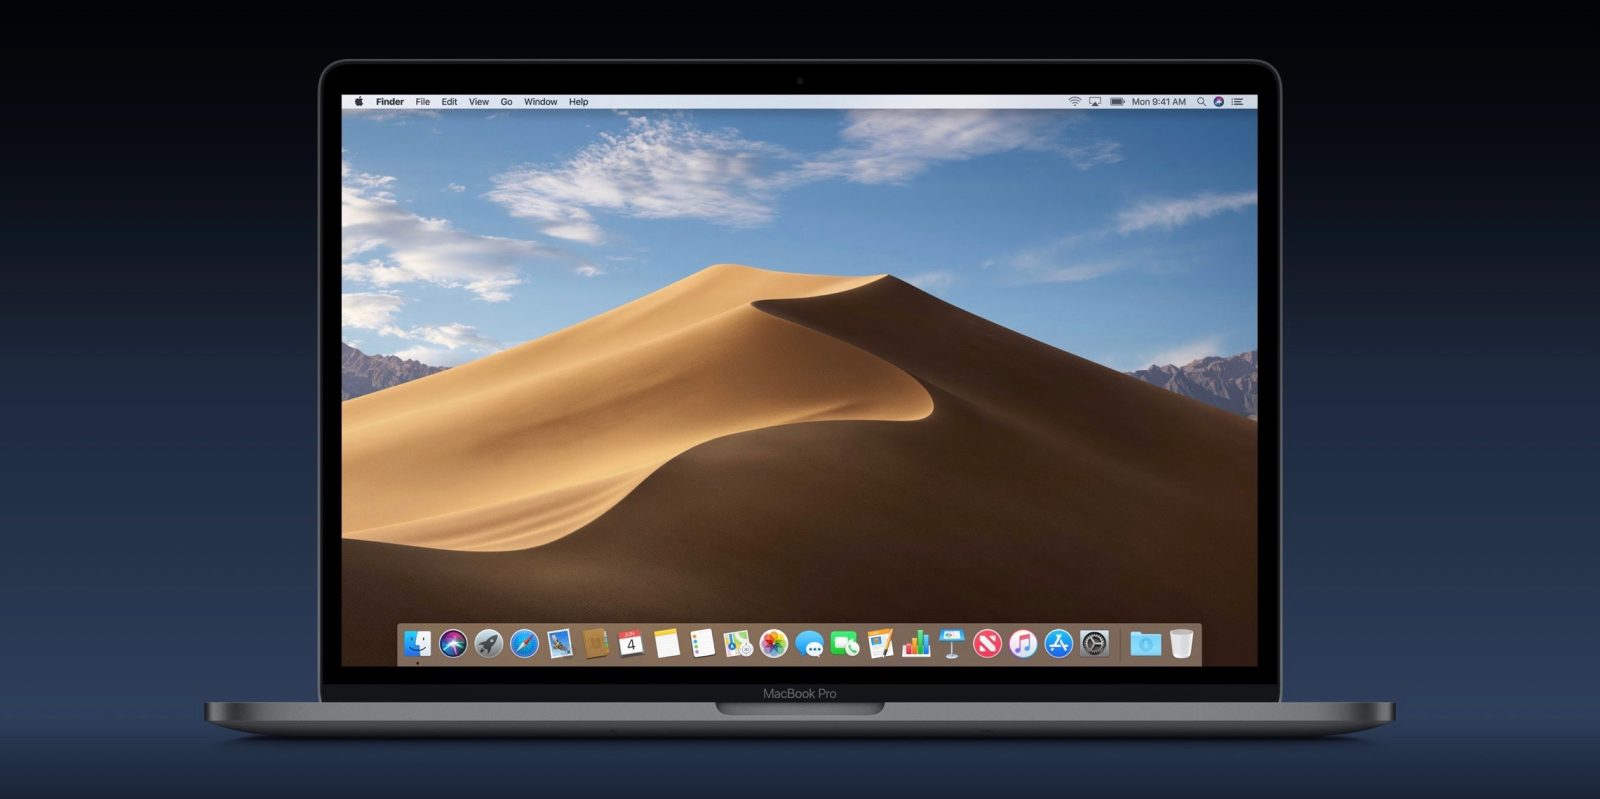 macOS Mojave includes two desert-themed wallpapers, download here